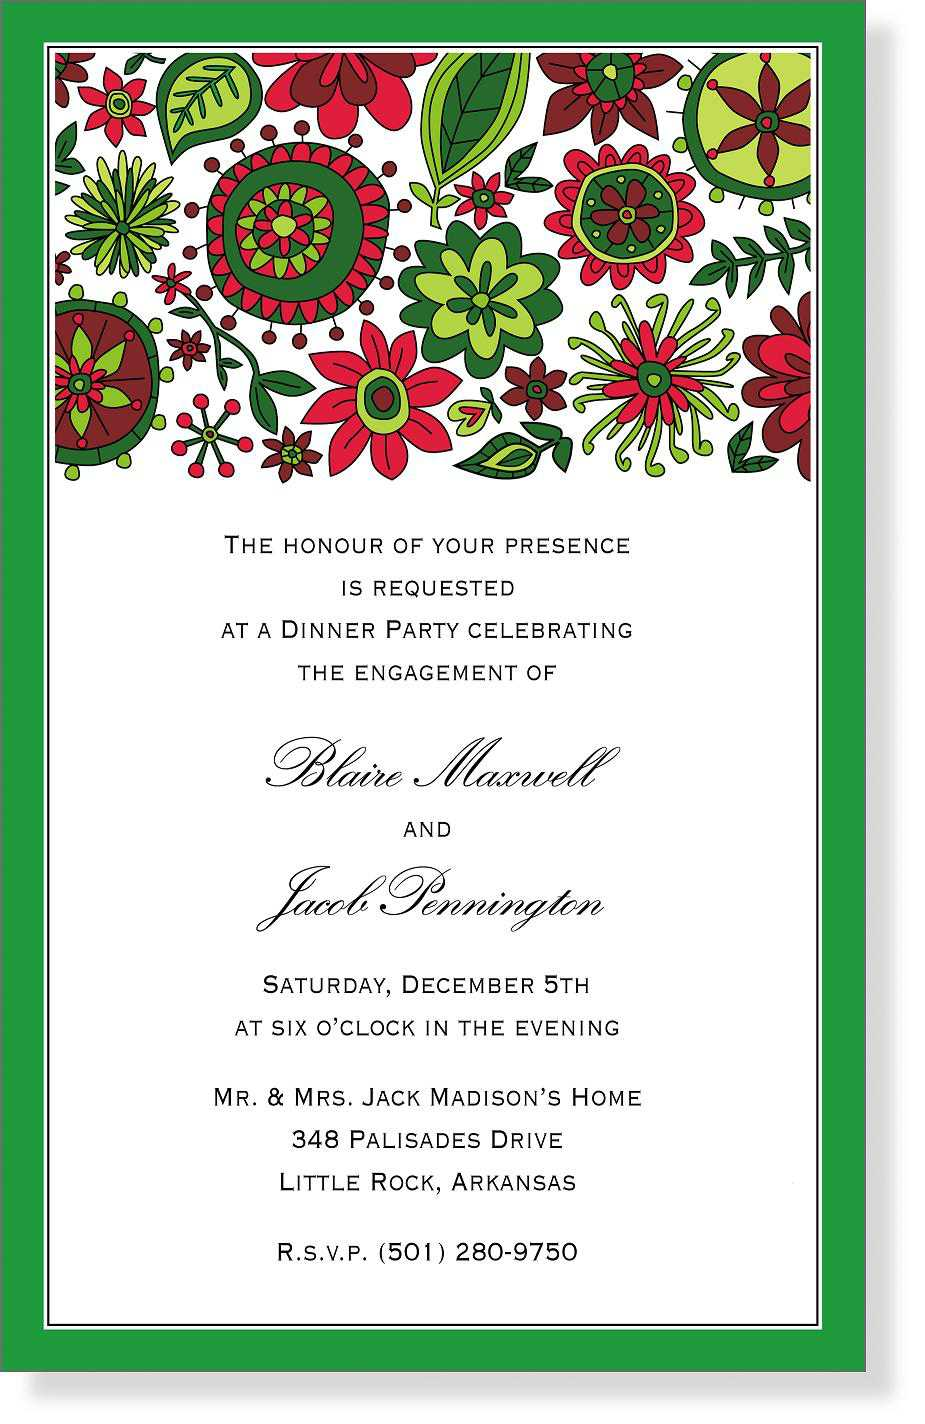 doc templates christmas invitations christmas invitations templates ho ho ho holiday printable templates christmas invitations